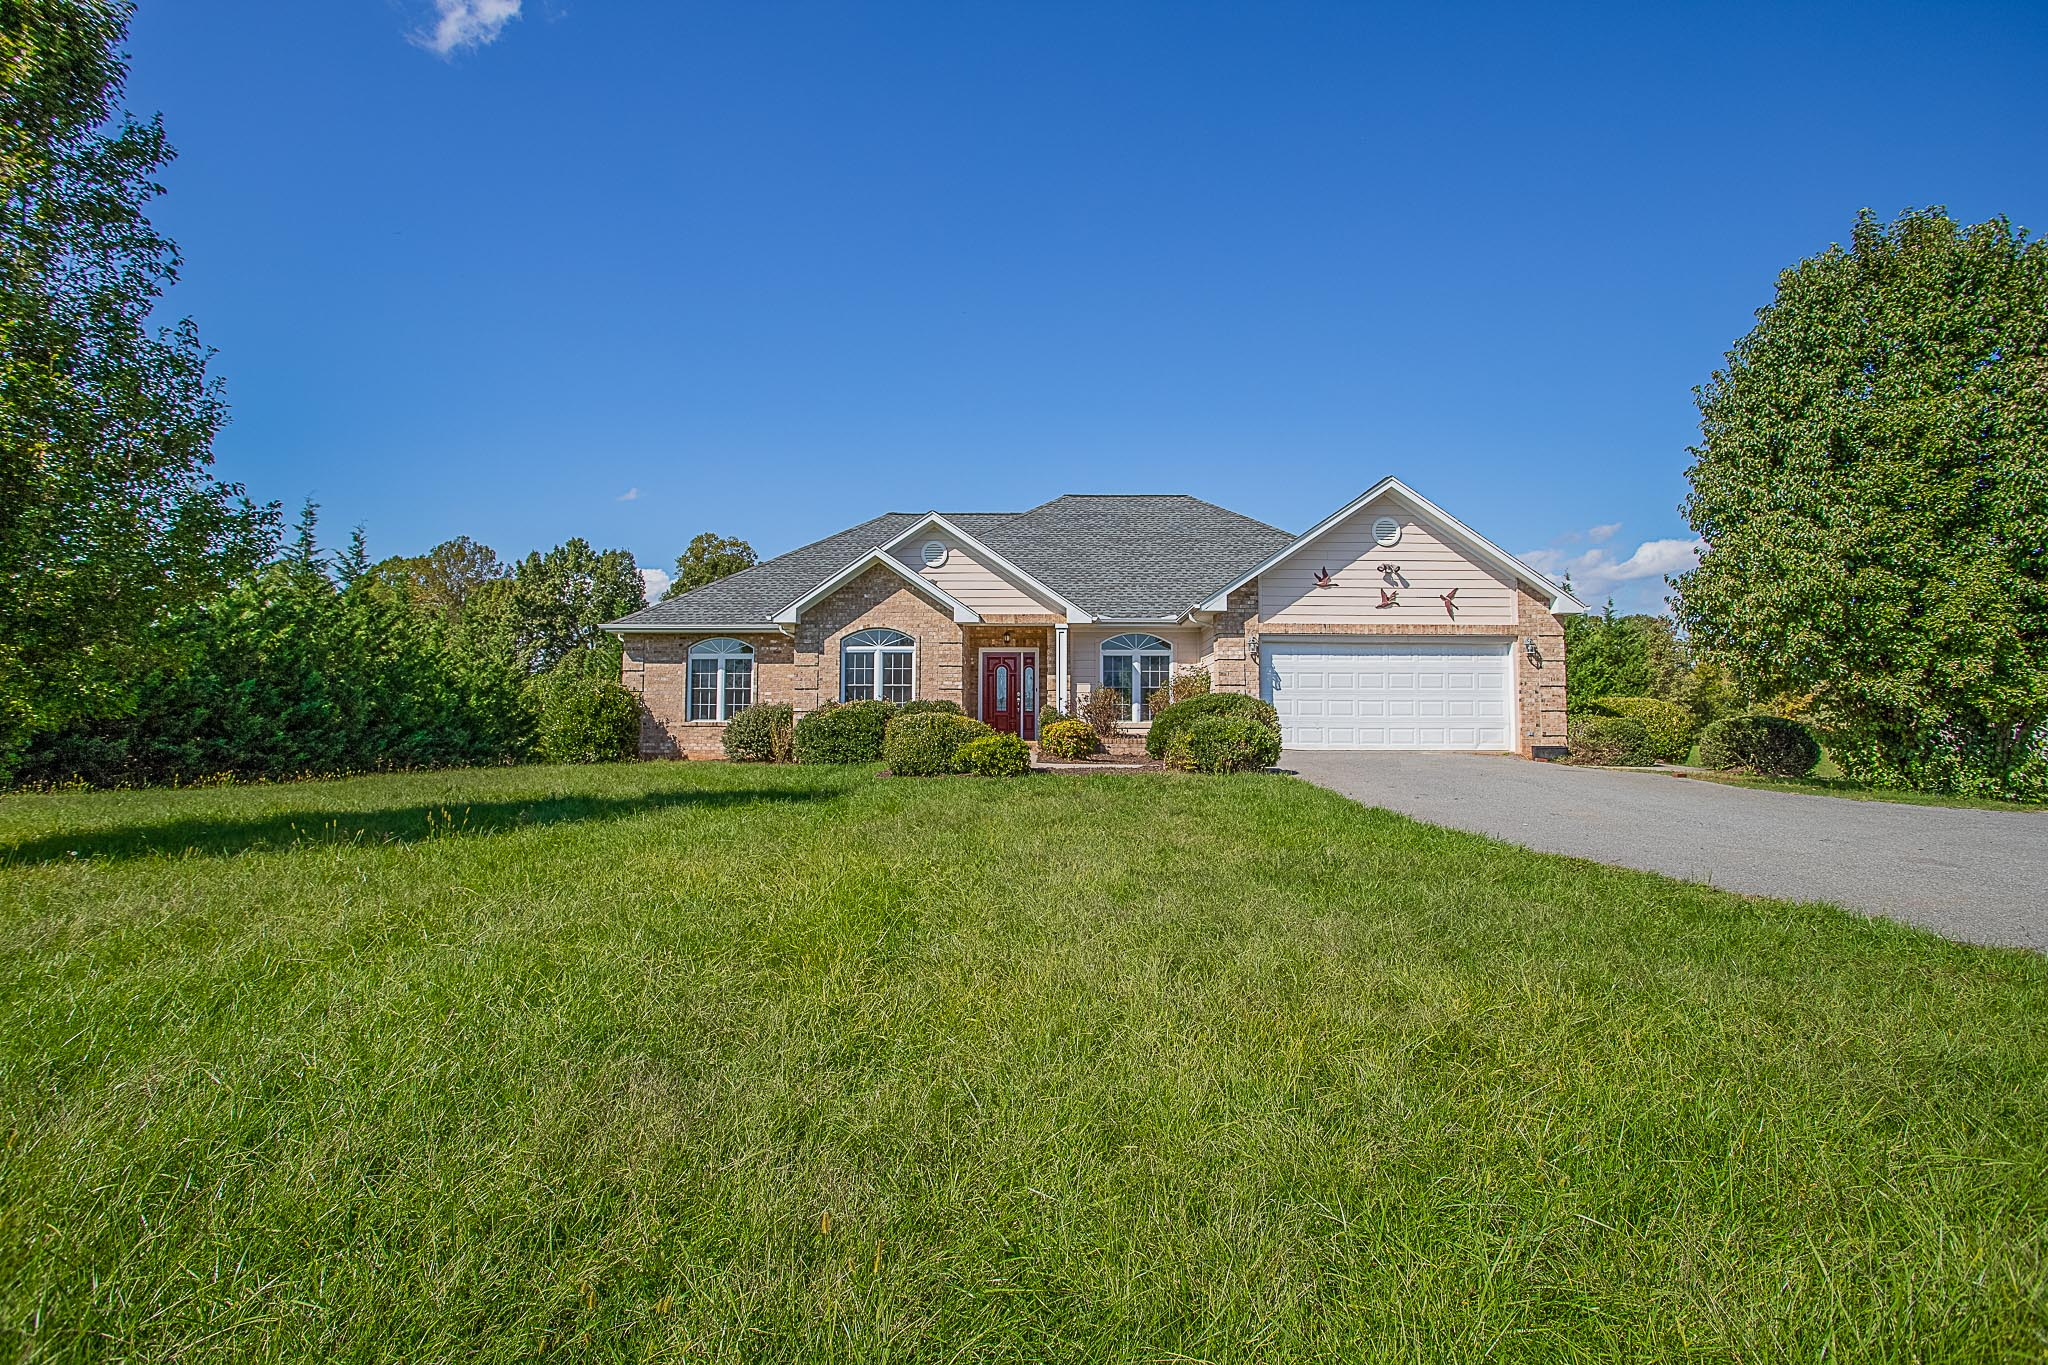 Home for Sale in Campbell County, 456 Arrington Drive